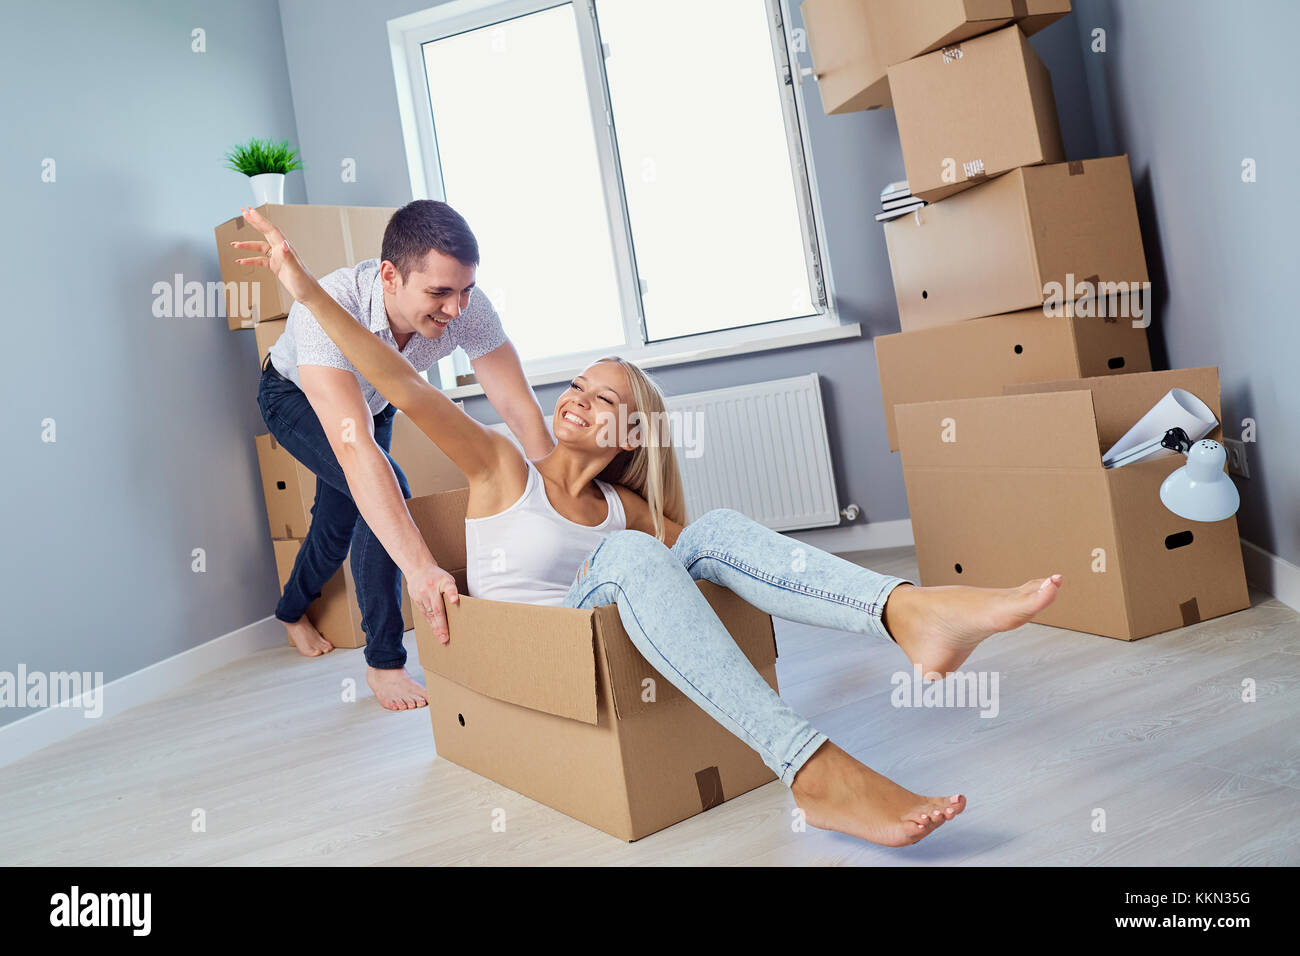 Young Couple Apartment Housewarming Stock Photos And Housewarming Stock Images Alamy